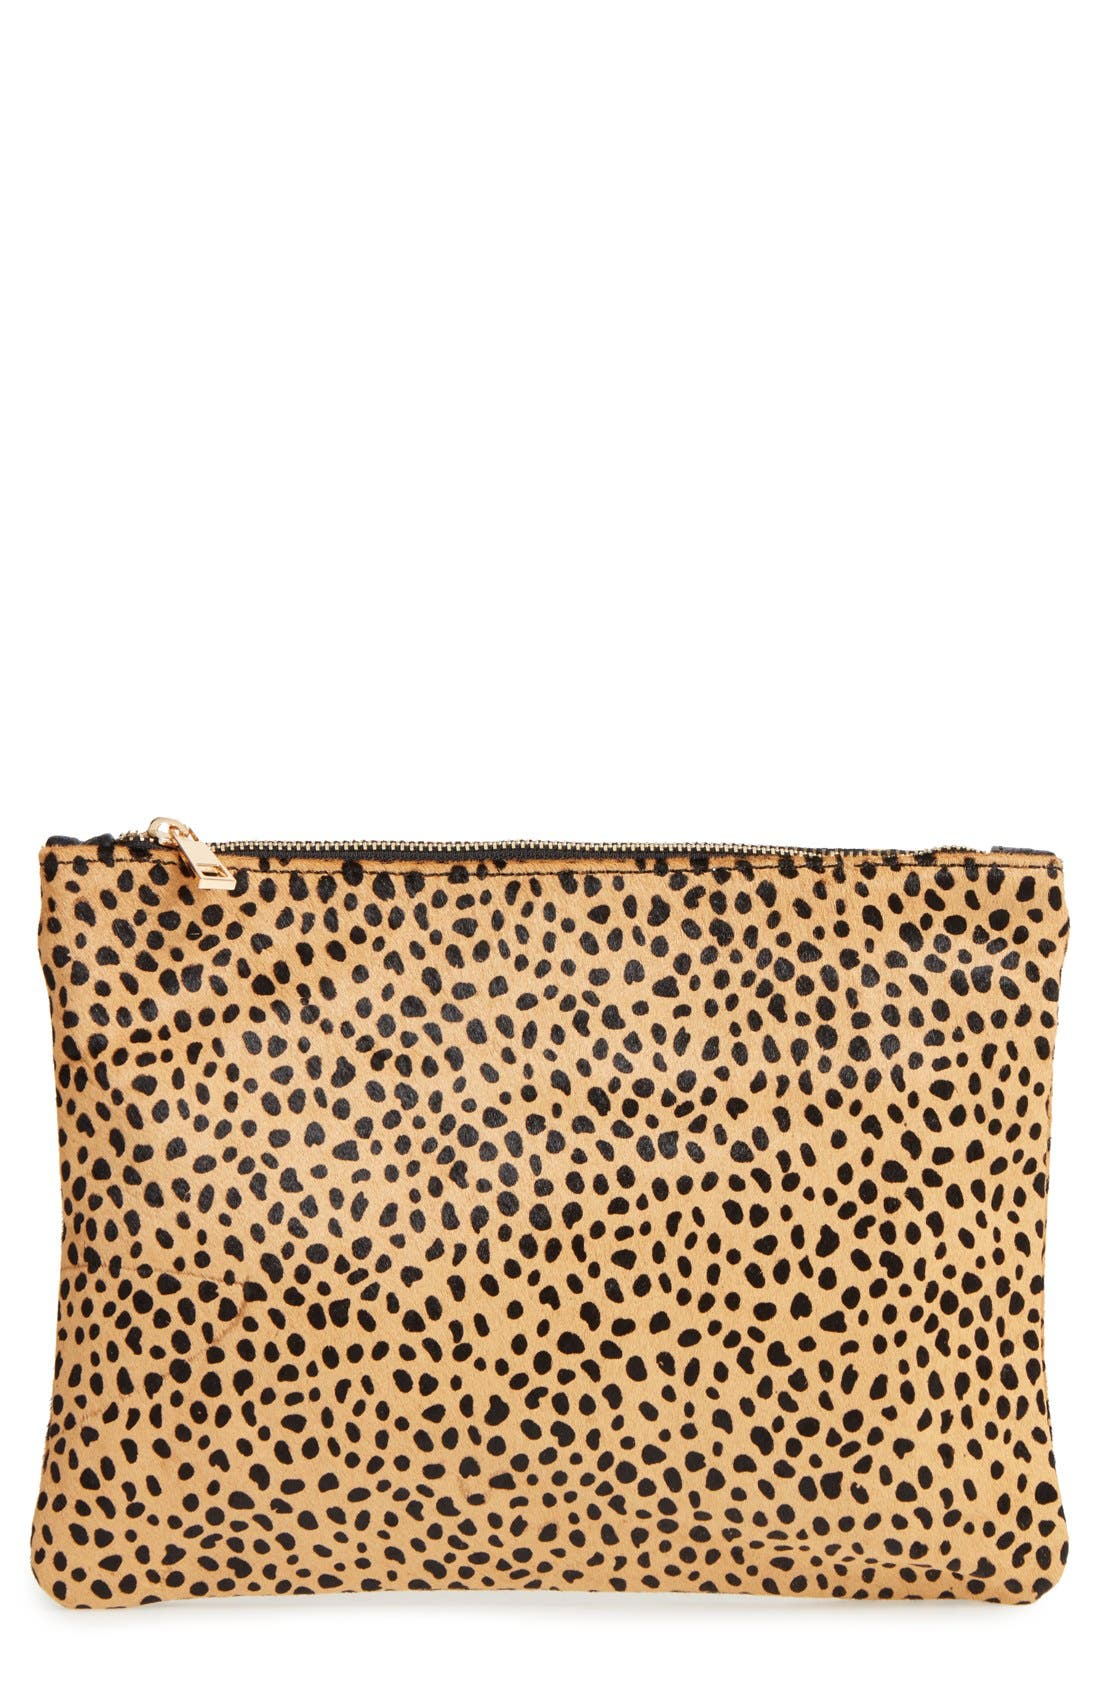 Main Image - Sole Society 'Dolce' Genuine Calf Hair Clutch